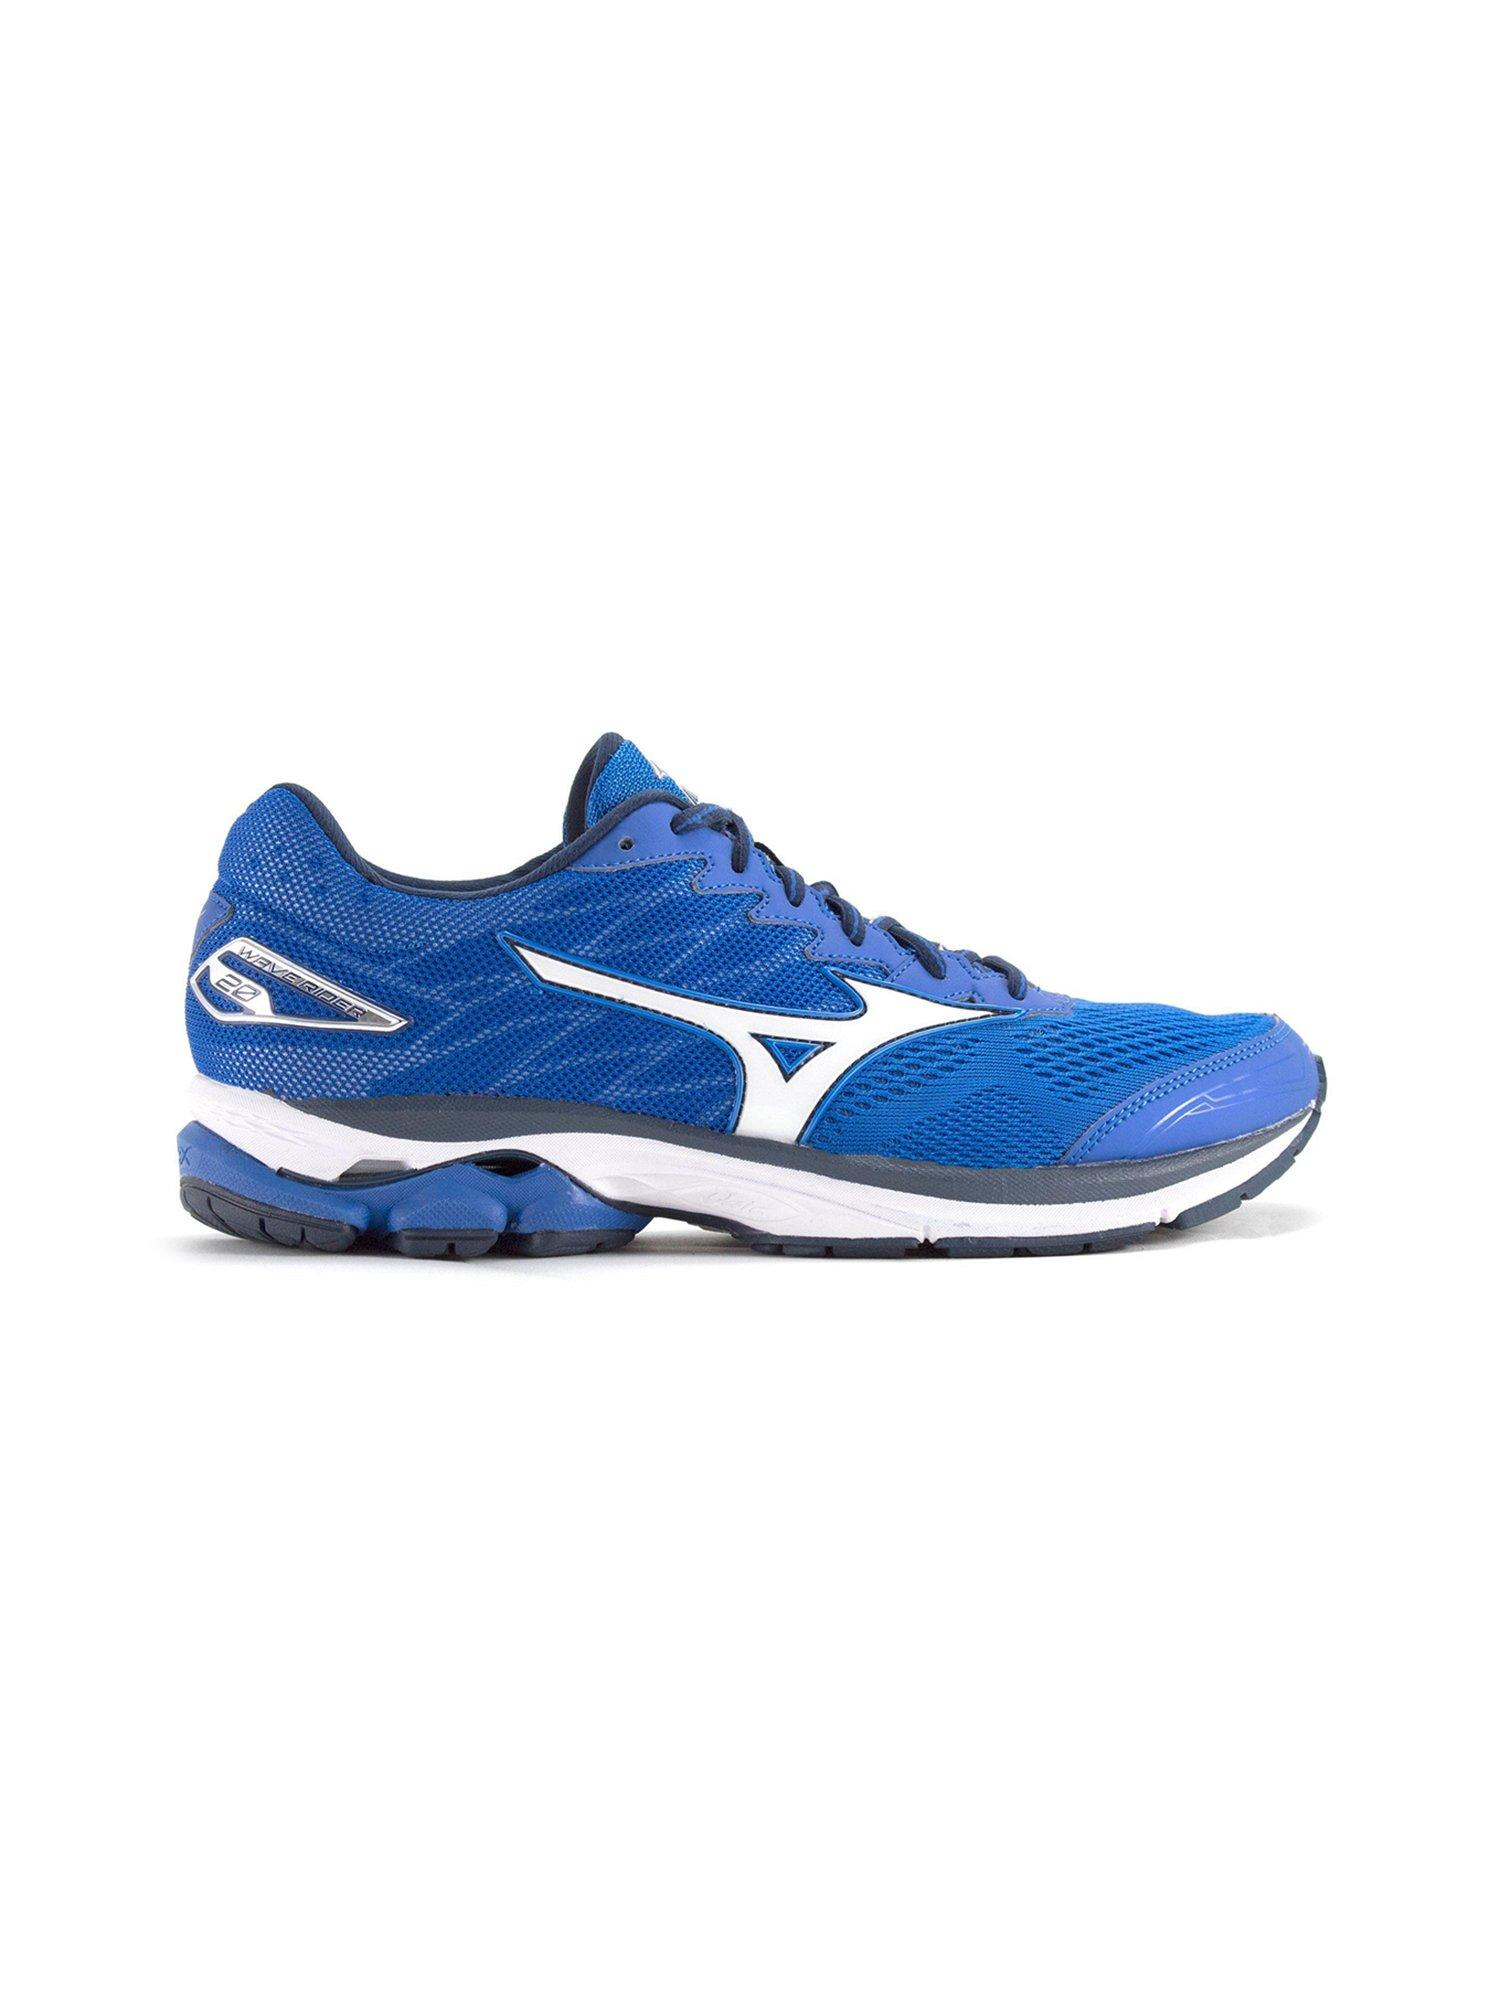 tenis mizuno wave legend 4 pre�o walmart one italy gold